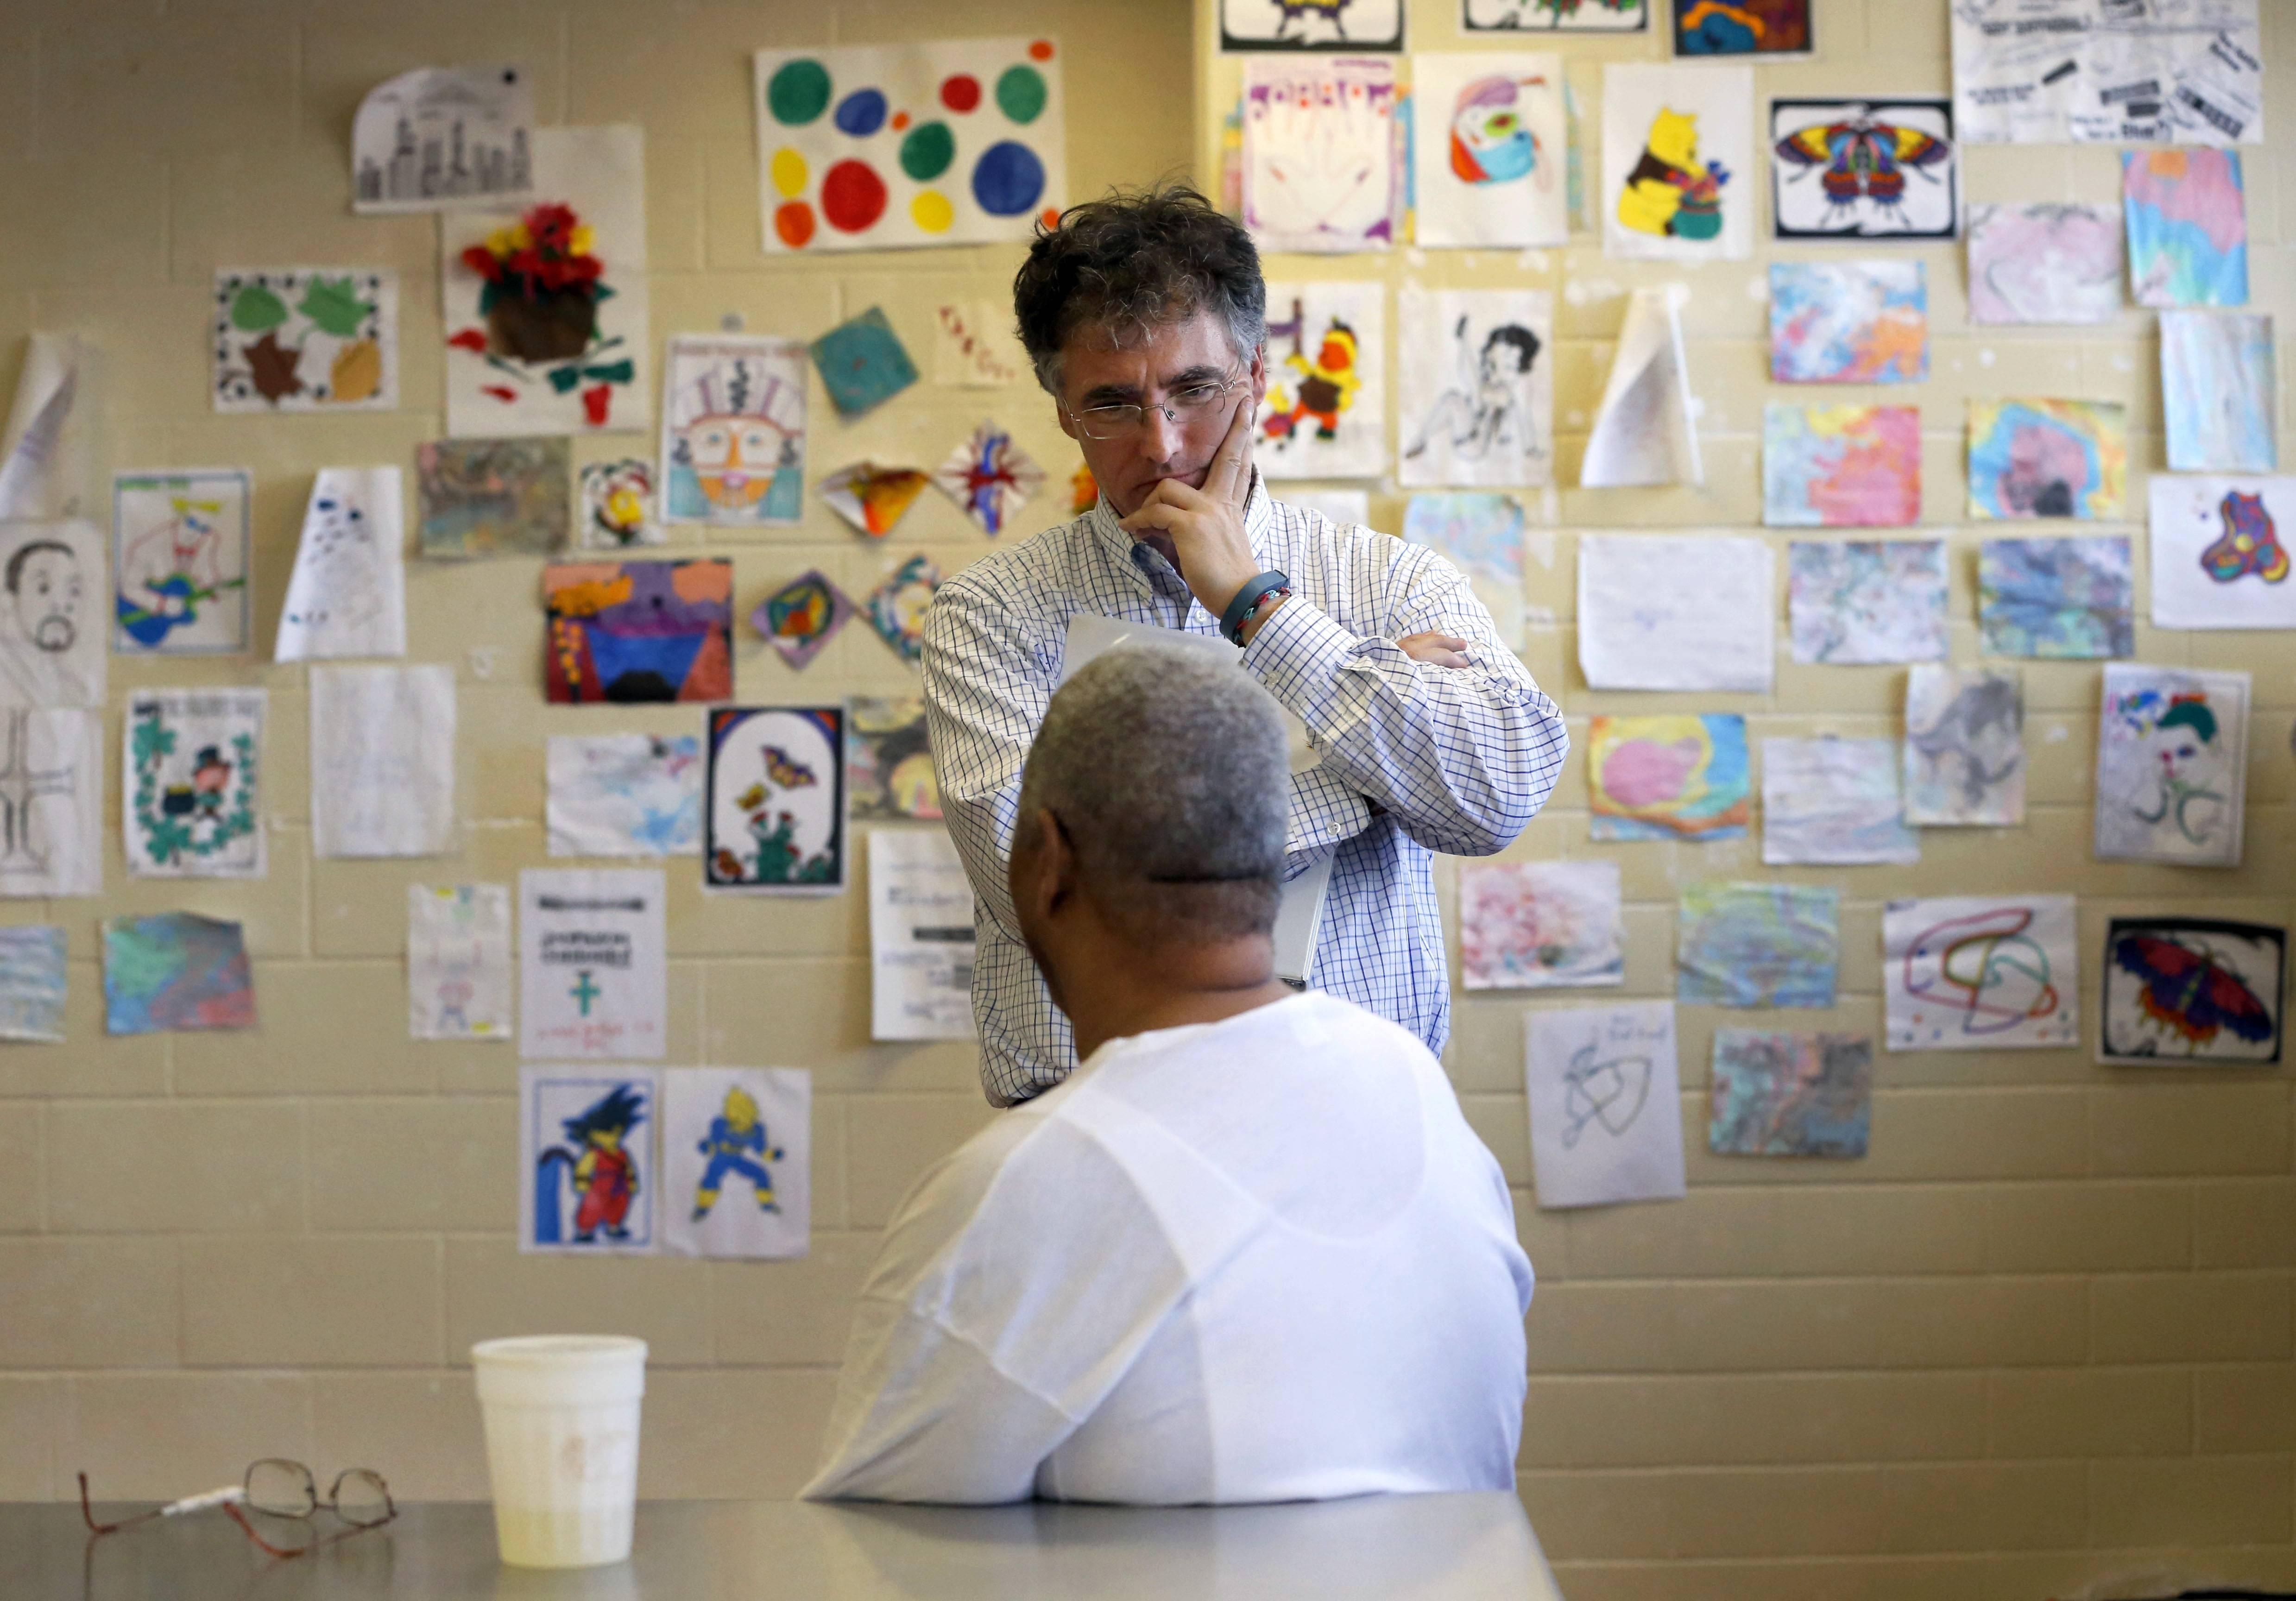 Cook County Sheriff Tom Dart, top, talks with William, an inmate in the Cook County jail. Dart, a former prosecutor and state legislator, said when he took over running the Cook County jail in 2006 he knew little about mental illness in the cell blocks.